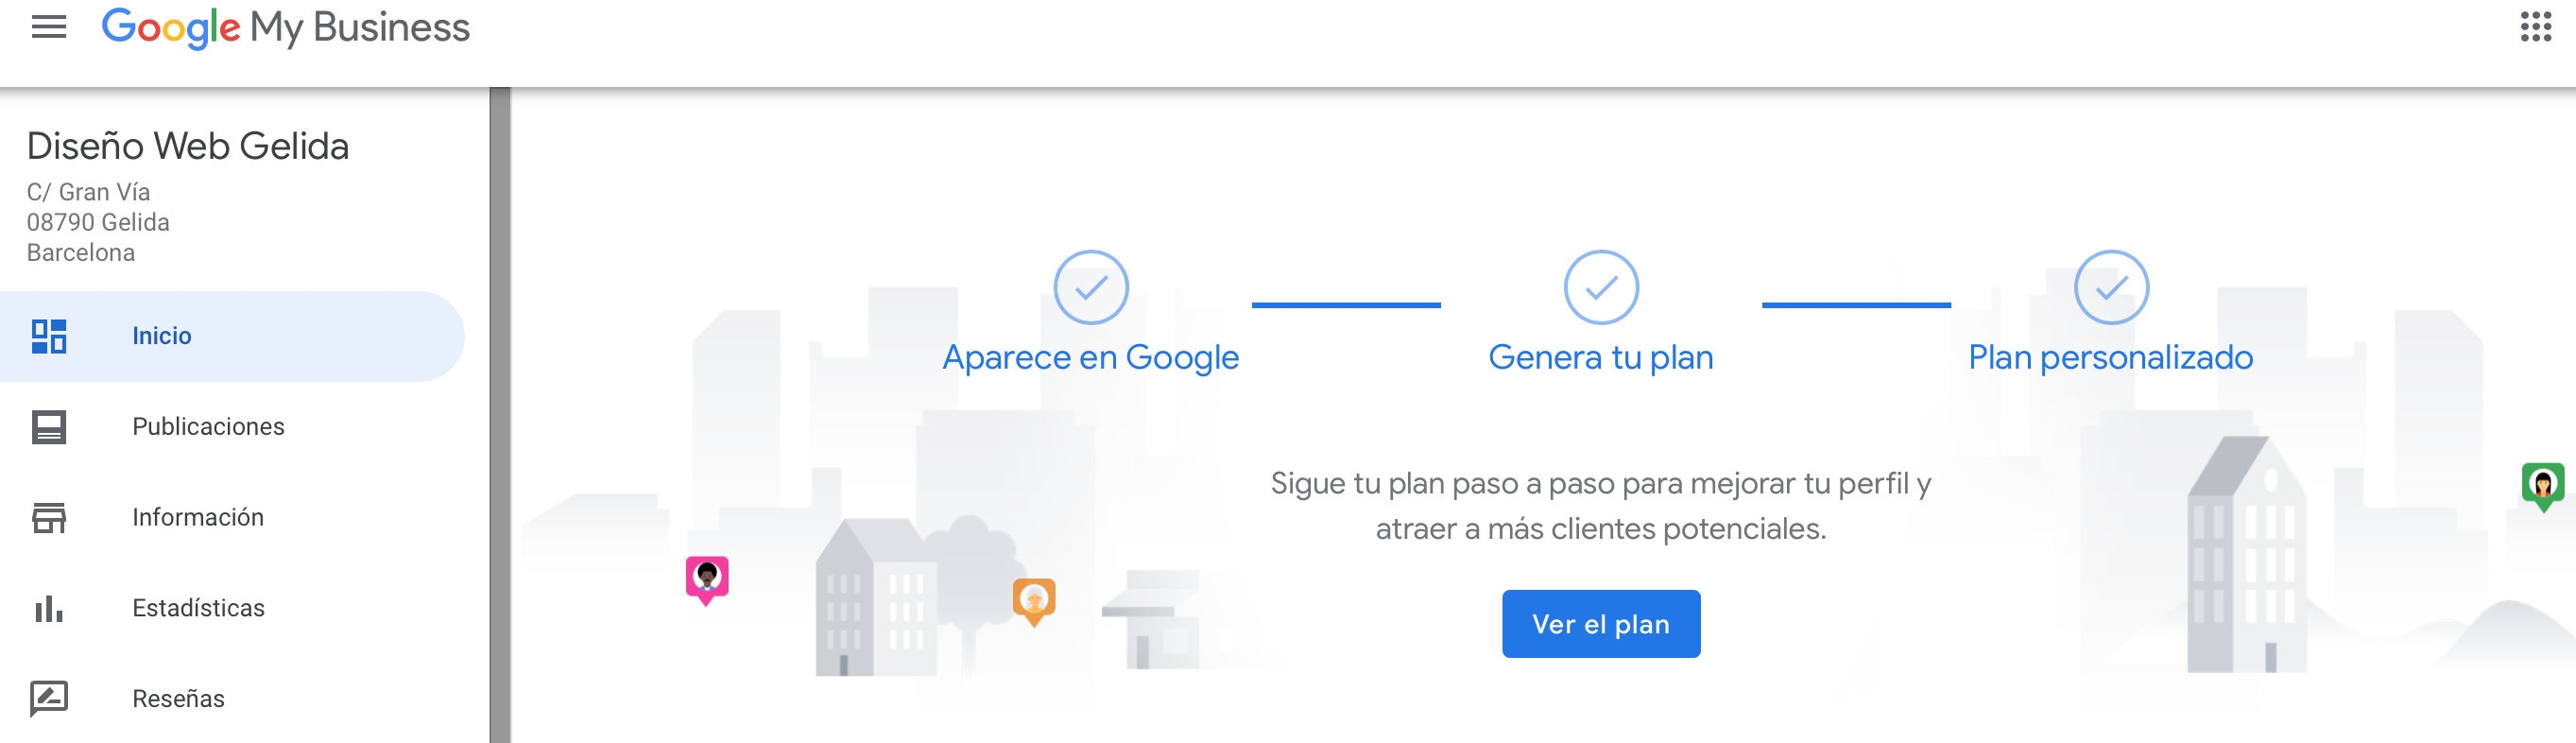 Ficha creada de Google My Business